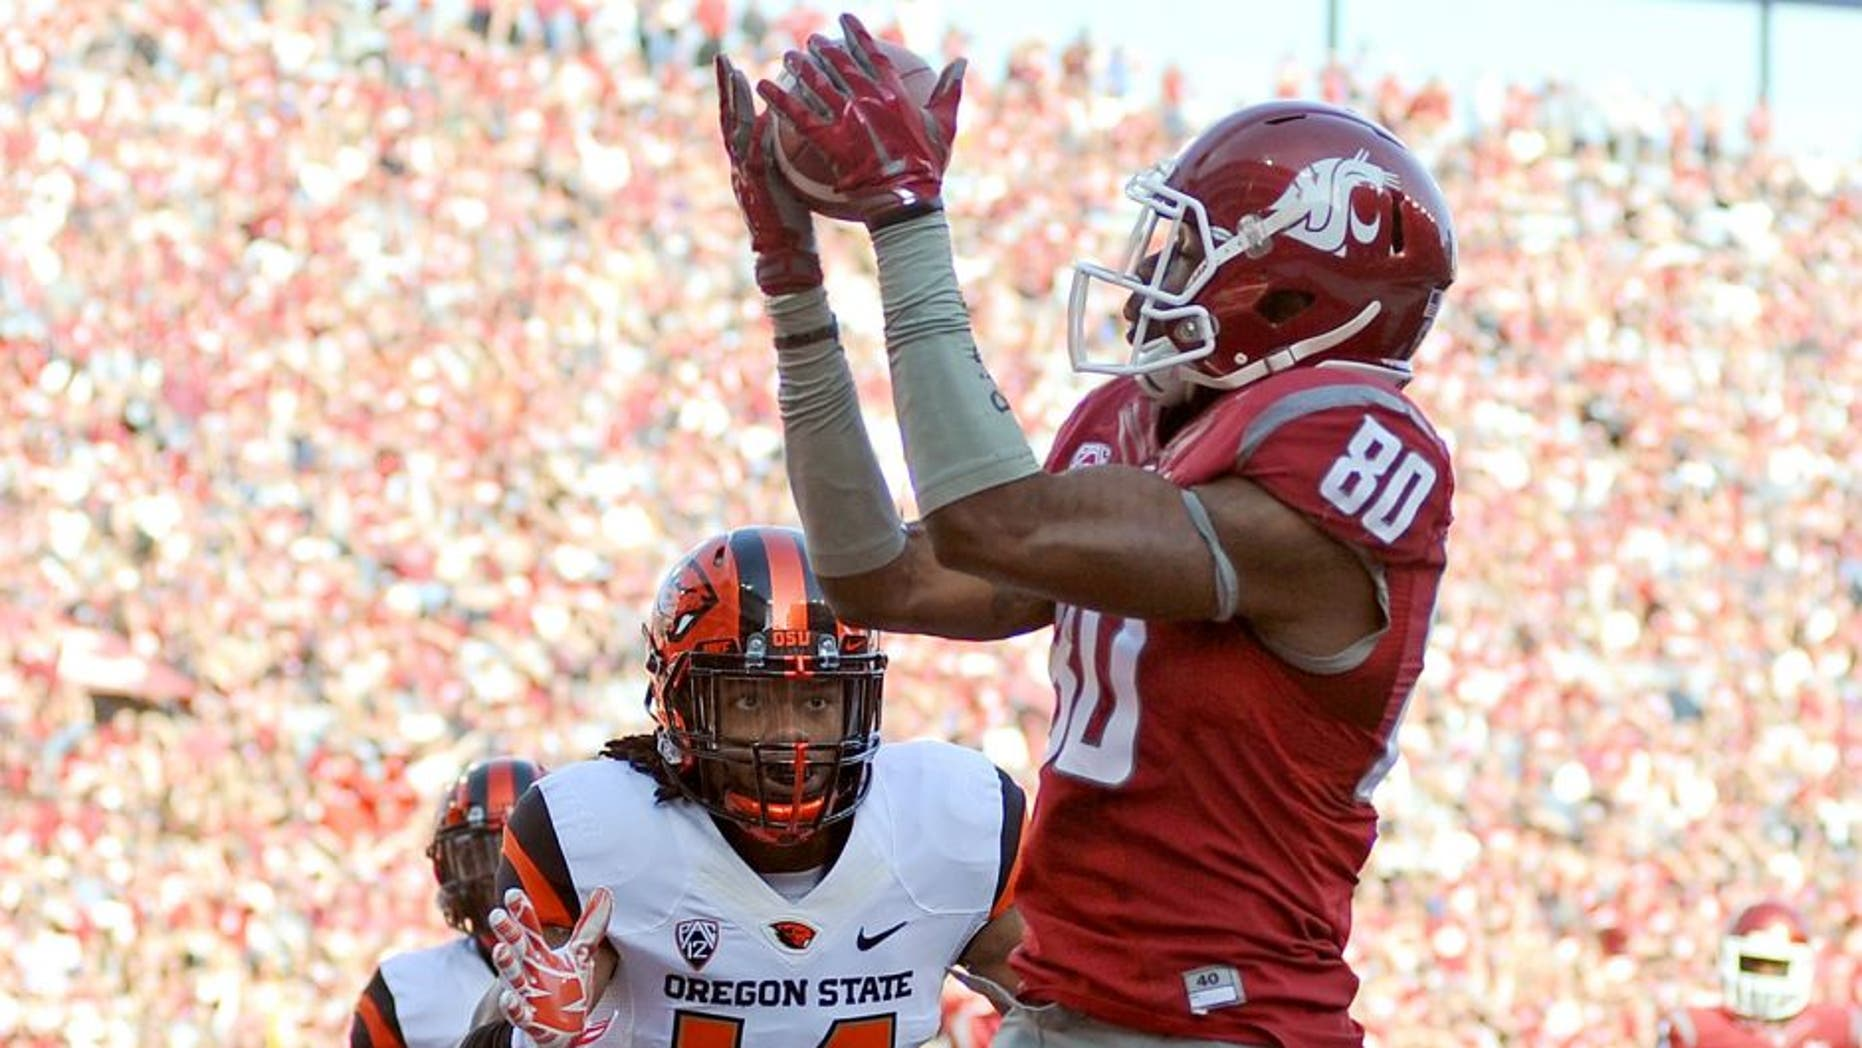 Oct 17, 2015; Pullman, WA, USA; Washington State Cougars wide receiver Dom Williams (80) makes a touchdown catch against Oregon State Beavers cornerback Treston Decoud (14) during the first half at Martin Stadium. Mandatory Credit: James Snook-USA TODAY Sports